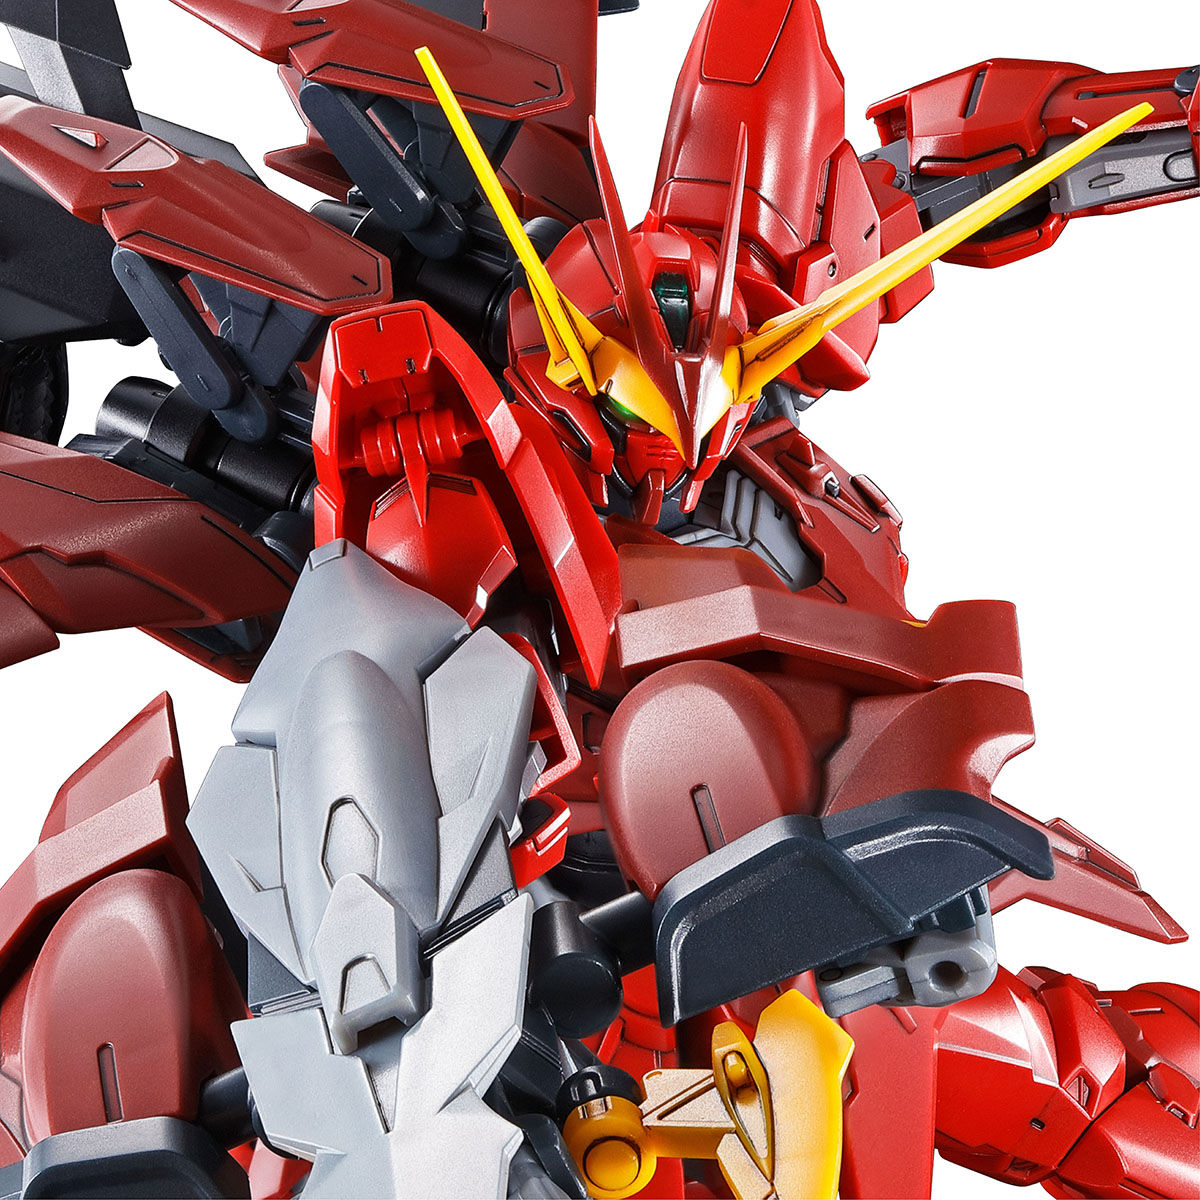 MG 1/100 TESTAMENT GUNDAM [Nov 2020 Delivery]